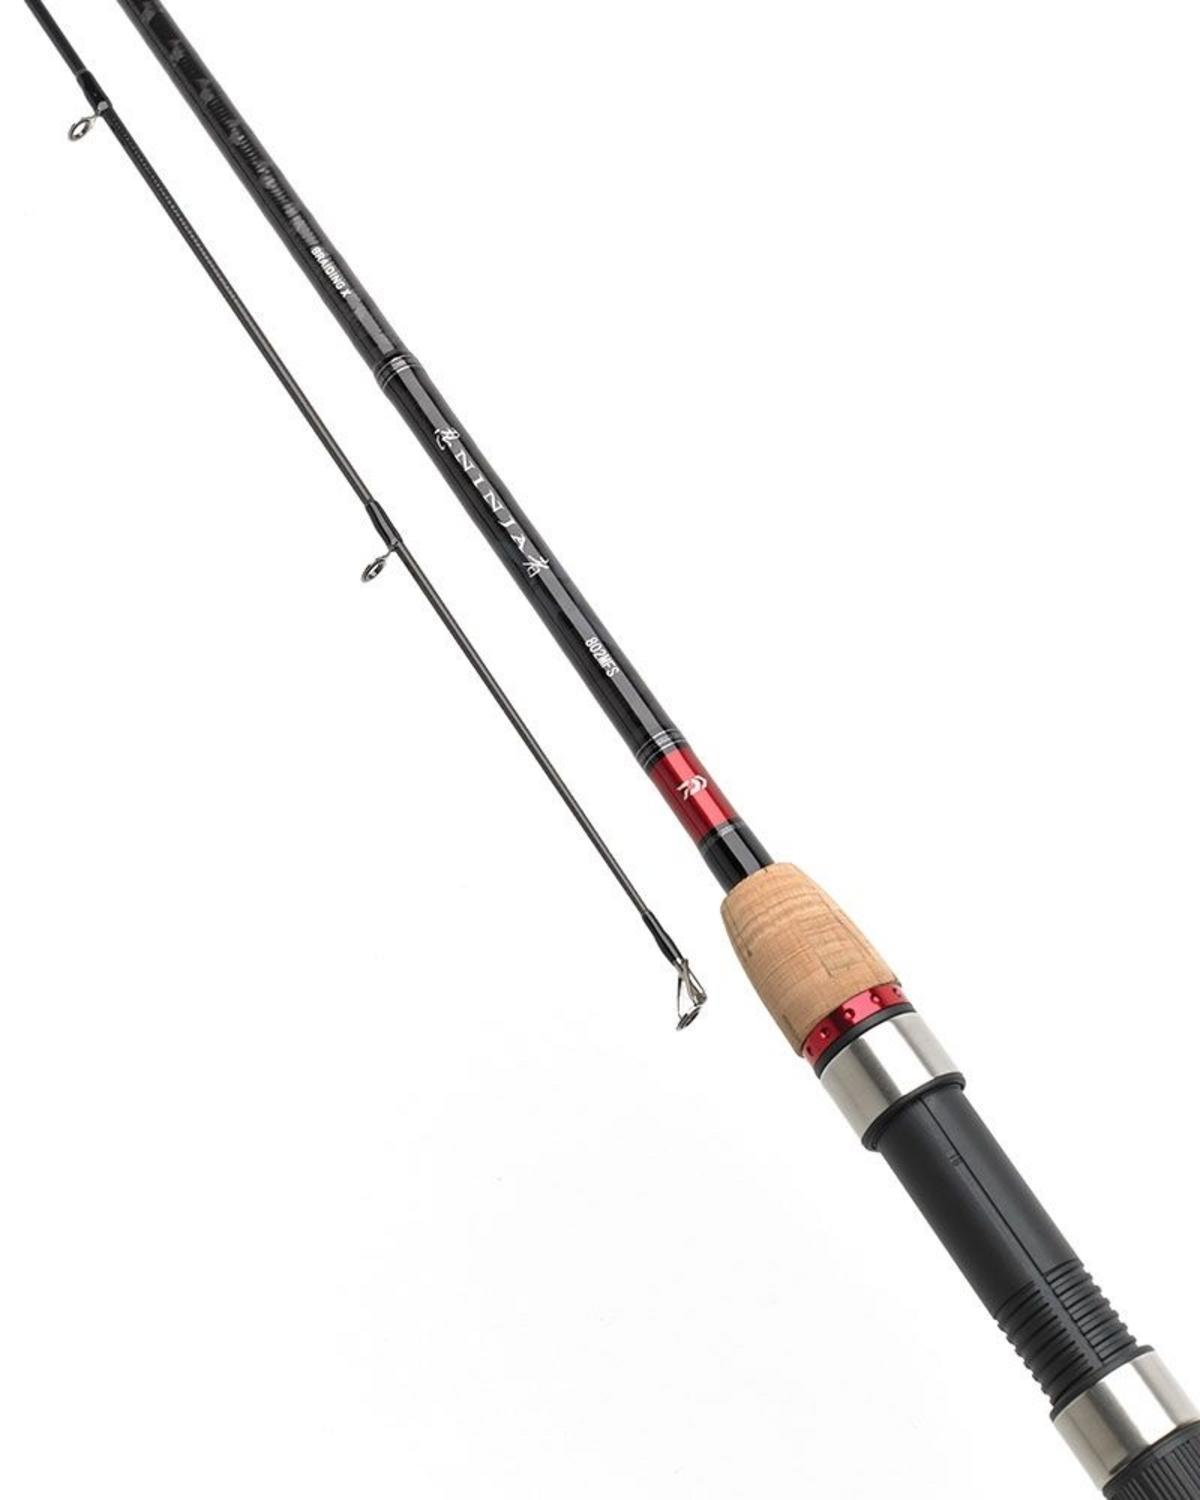 Ex Display Daiwa Ninja Spinning Rod 7ft 2pc Model No. NJX702HFS-AU